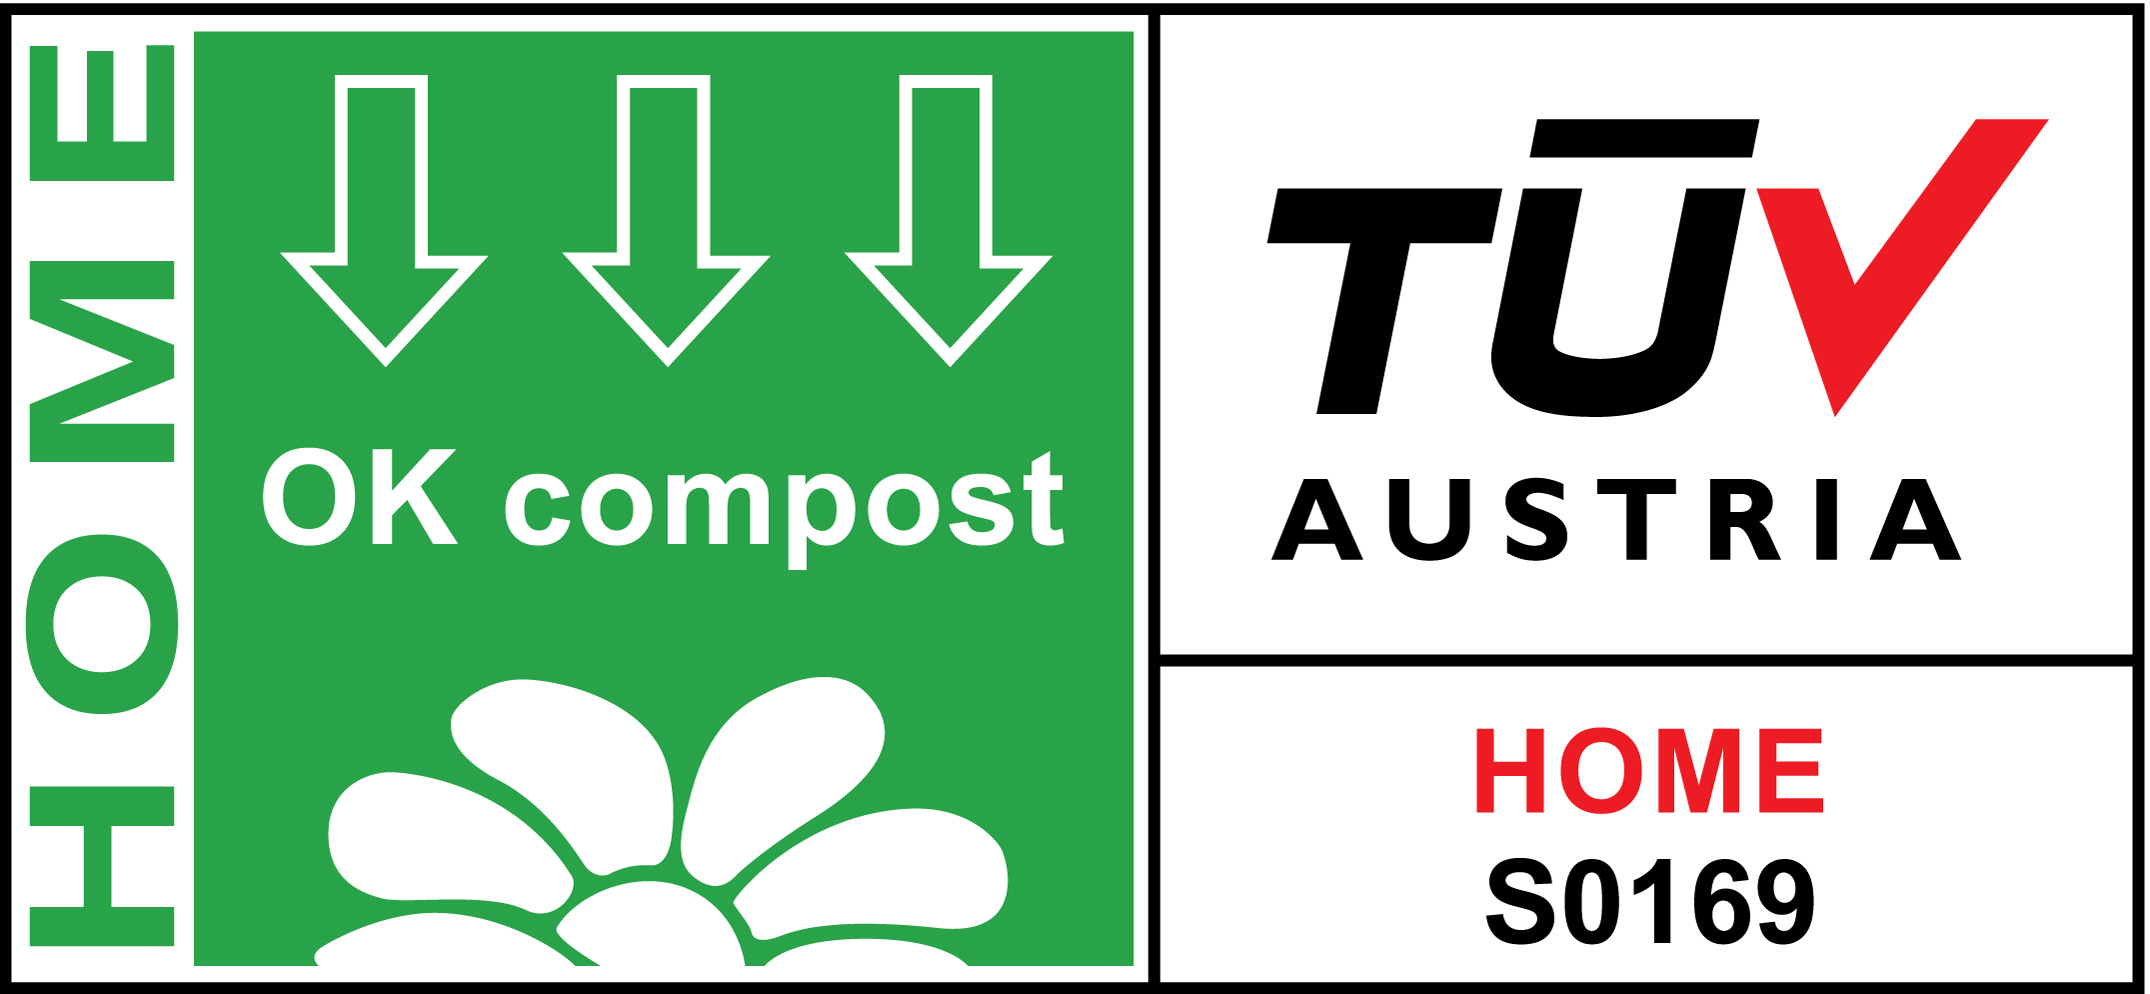 Five plants in Europe and Asia have been awarded OK compost HOME and OK compost INDUSTRIAL labels ...